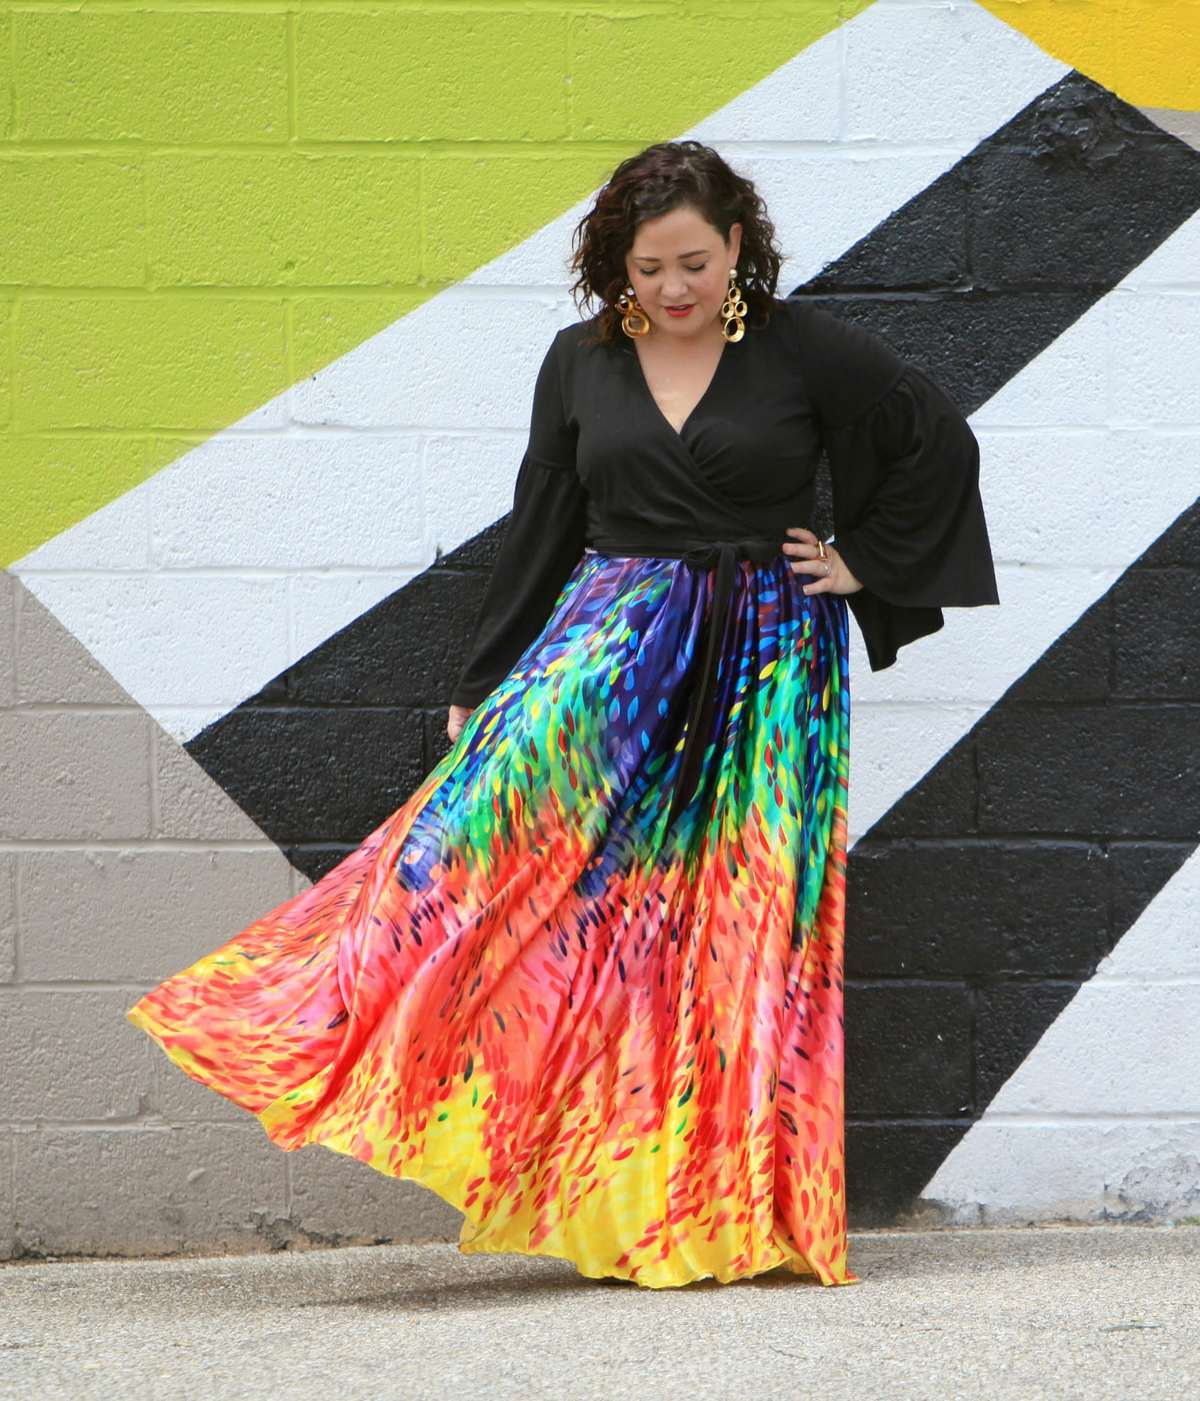 over 40 fashion blogger wardrobe oxygen in a colorful maxi skirt